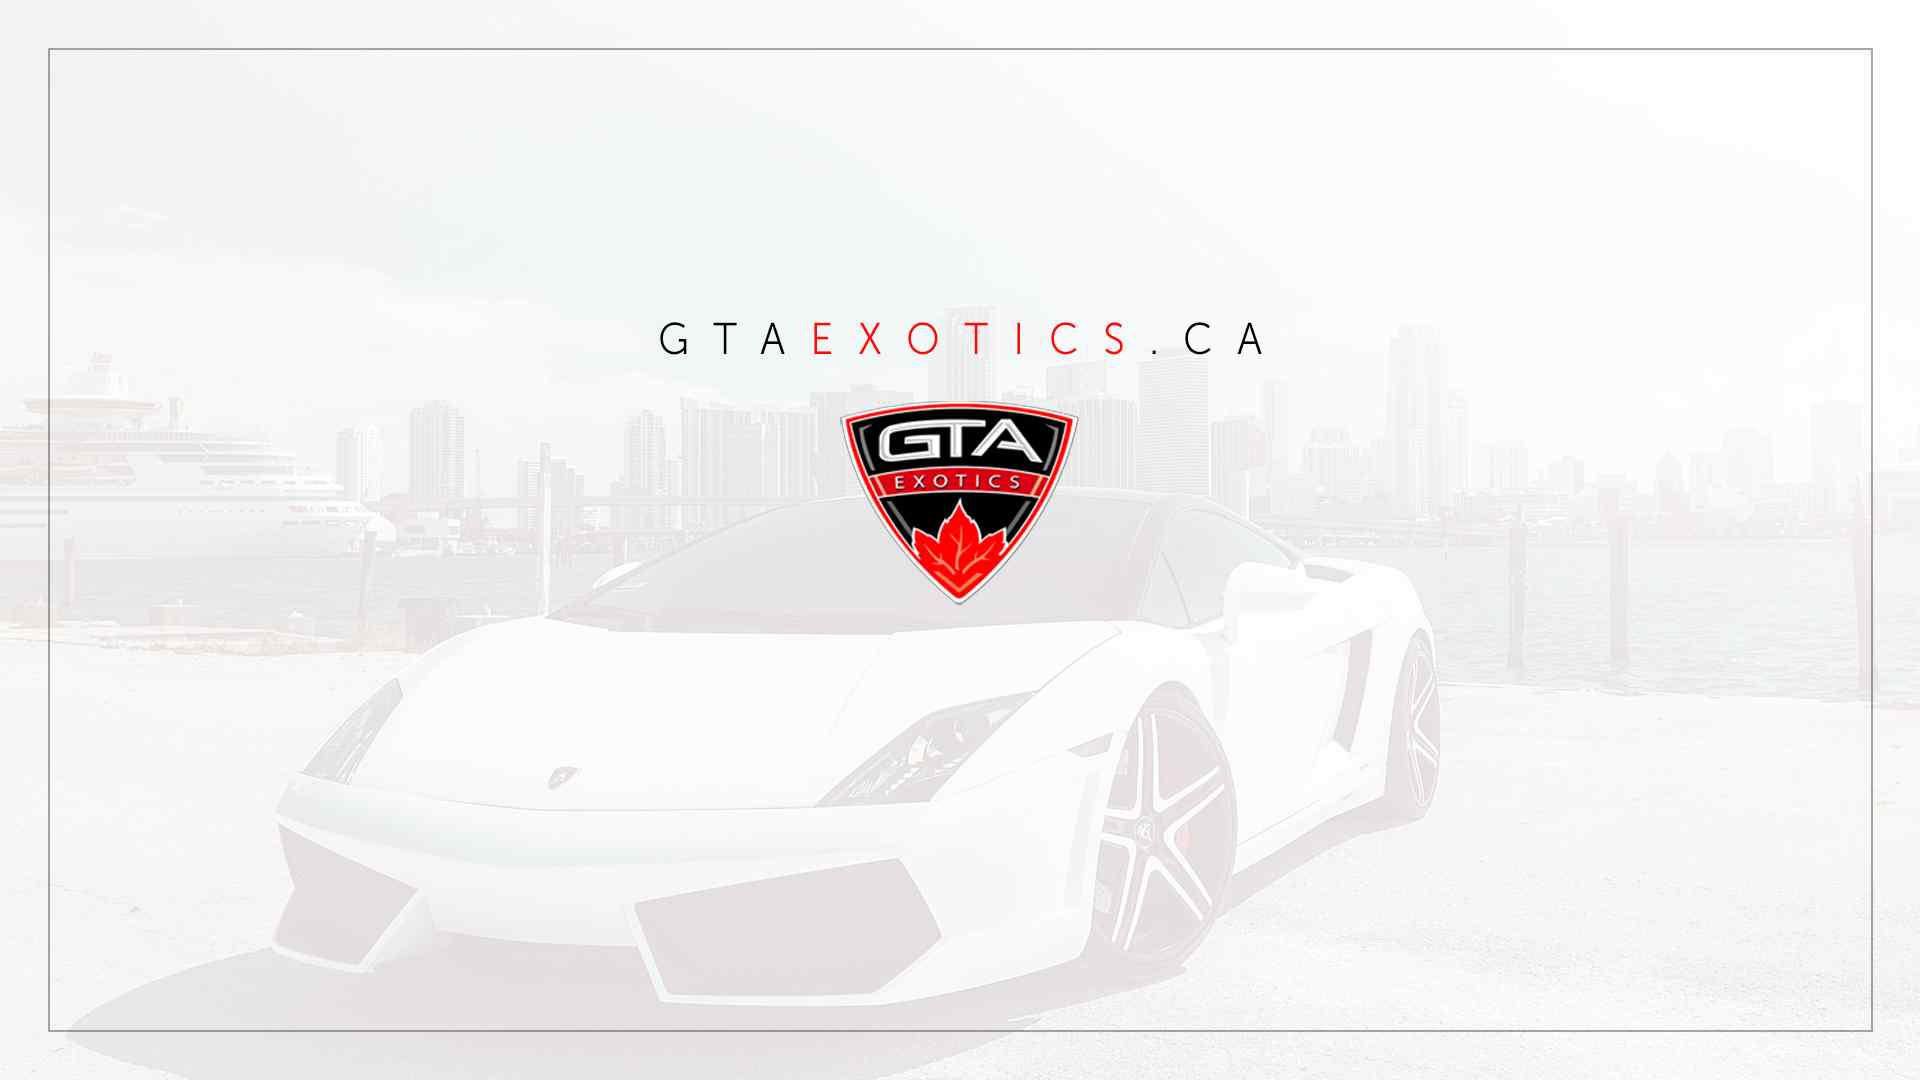 Toronto Exotic Car Rental - GTAExotics.ca